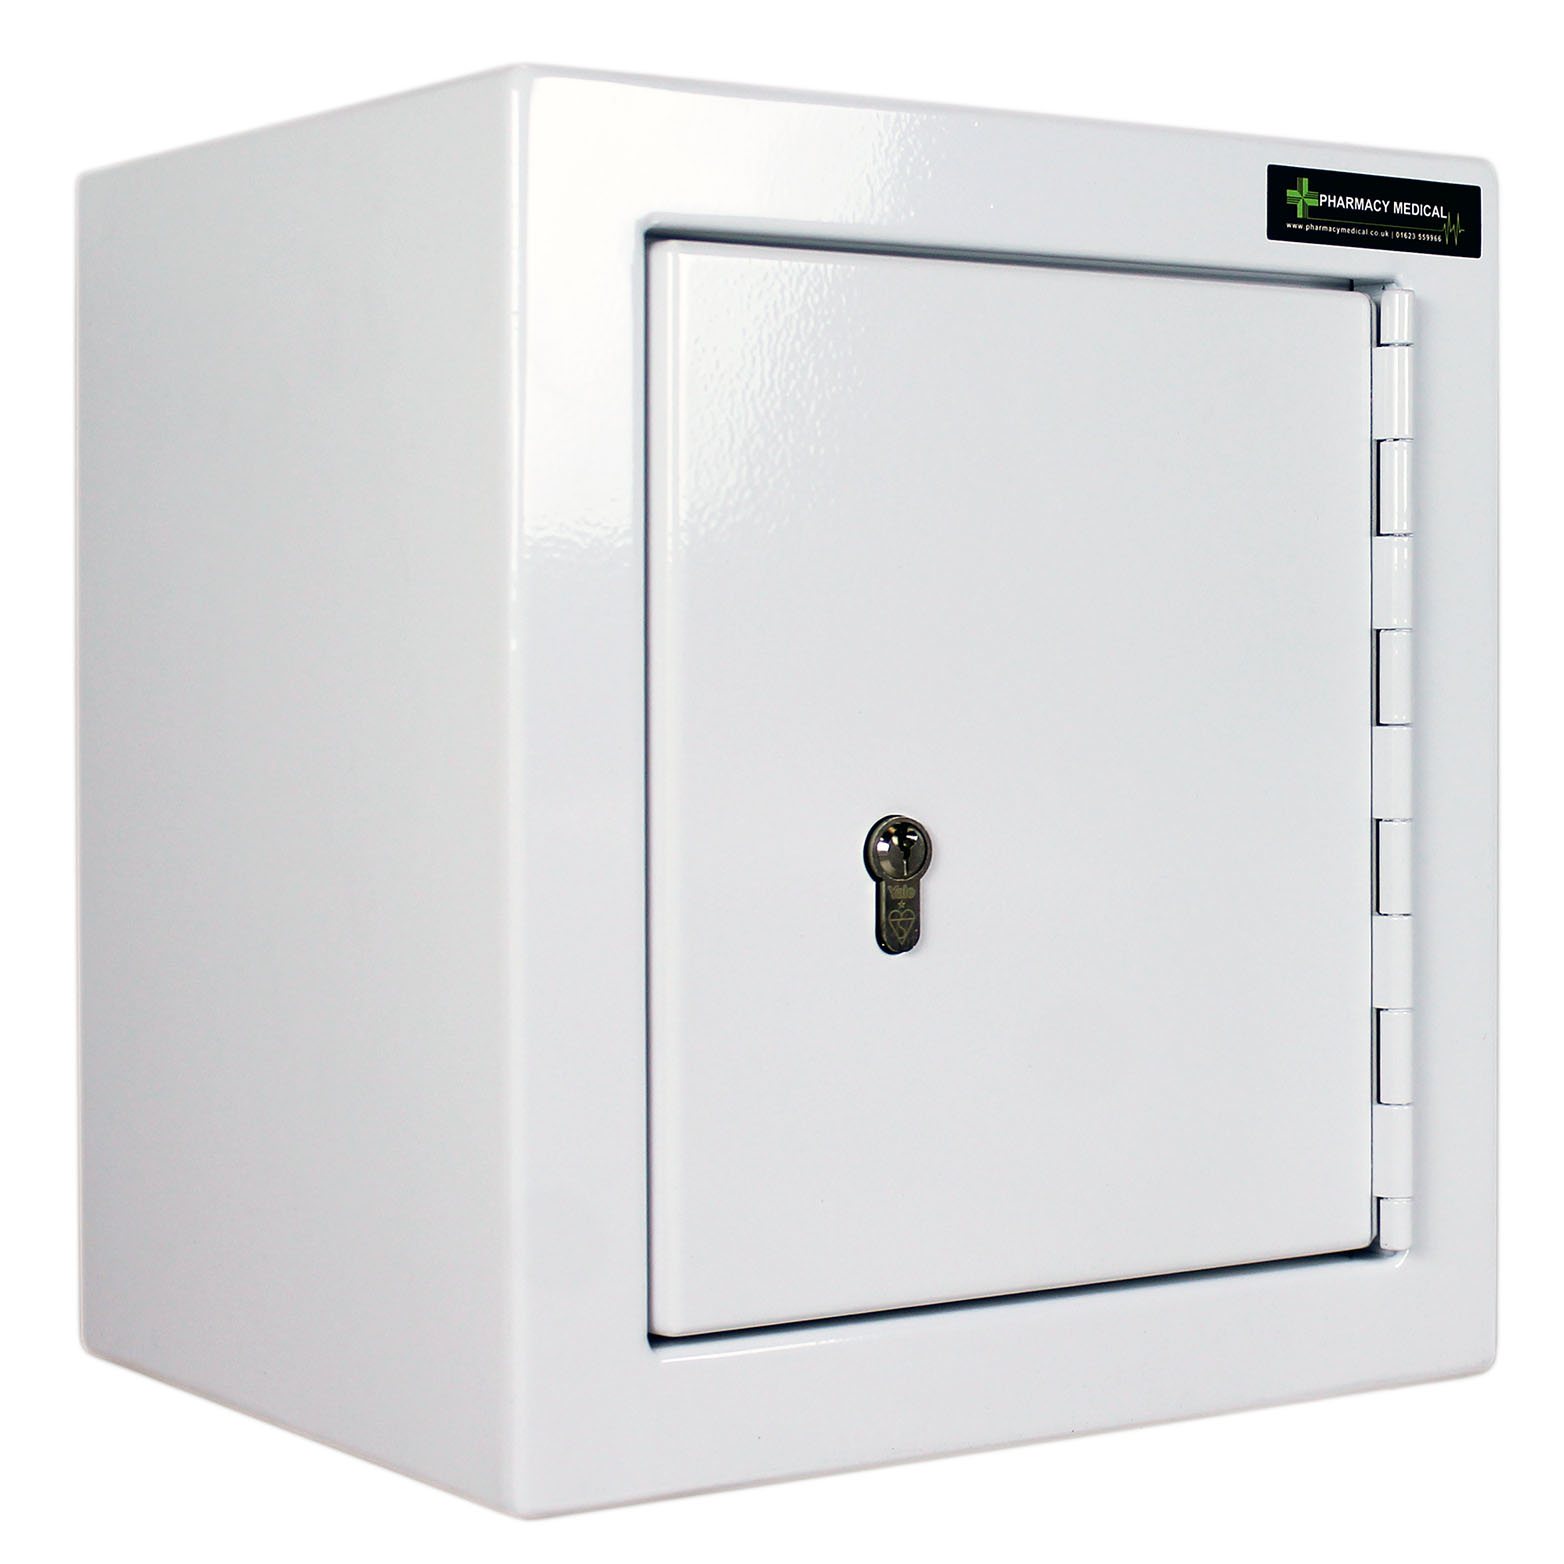 CDC002 Controlled Drug Cabinet